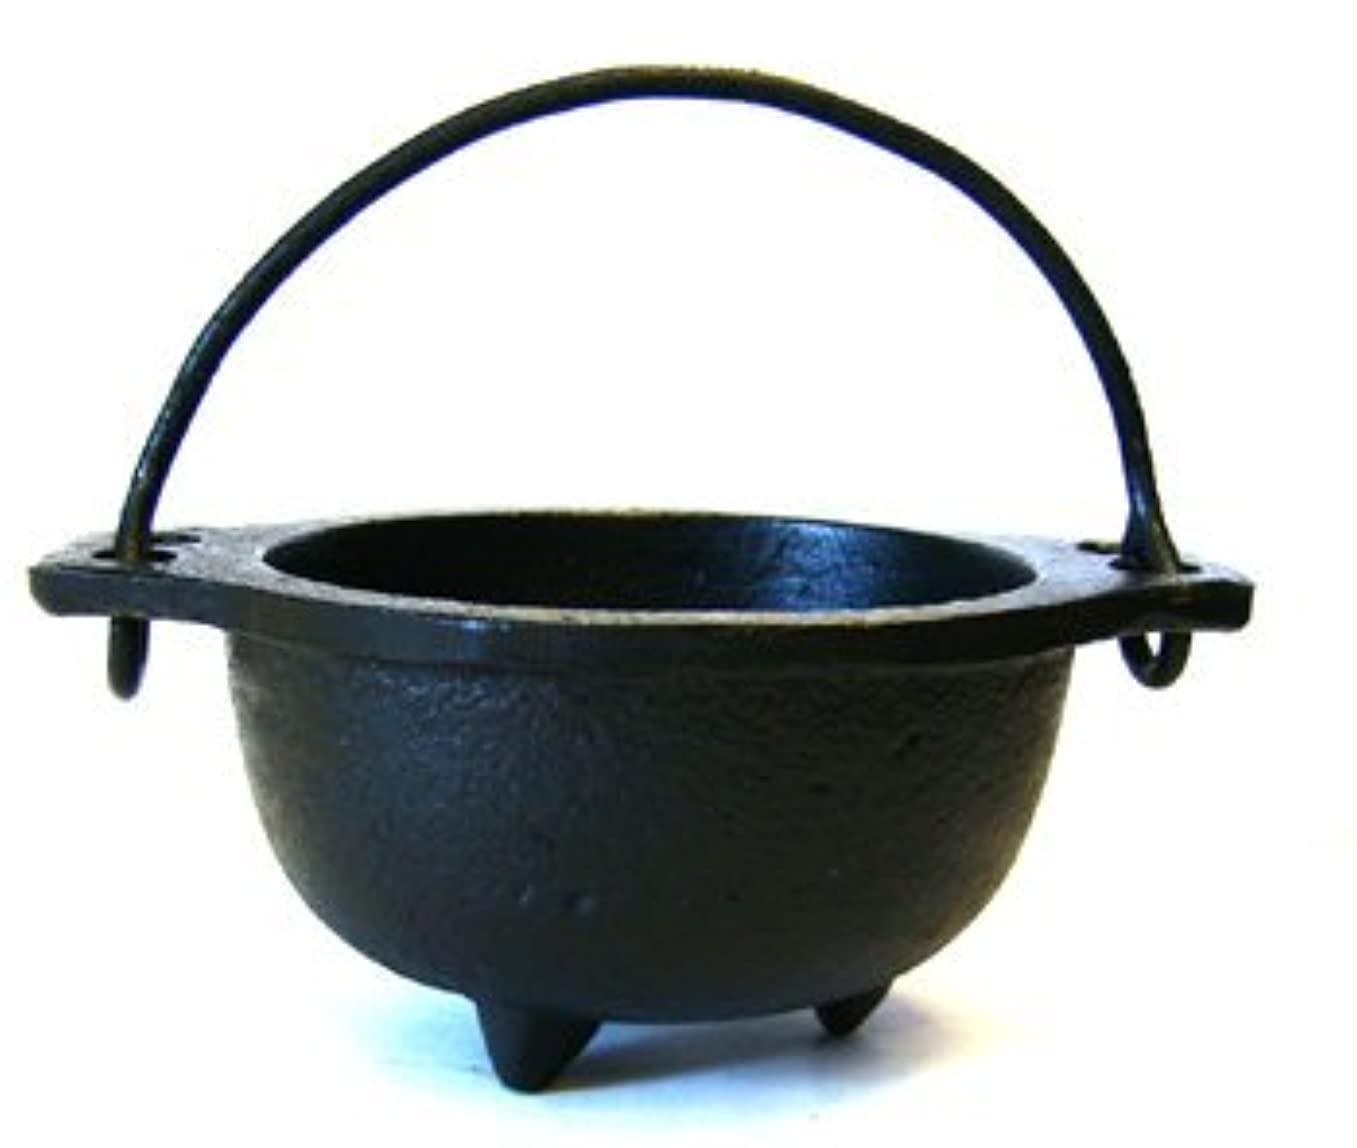 (7.6cm Diameter) - New Age Imports, Inc. 683422113284 Cast Iron Cauldron w, Ideal for smudging, Incense Burning...